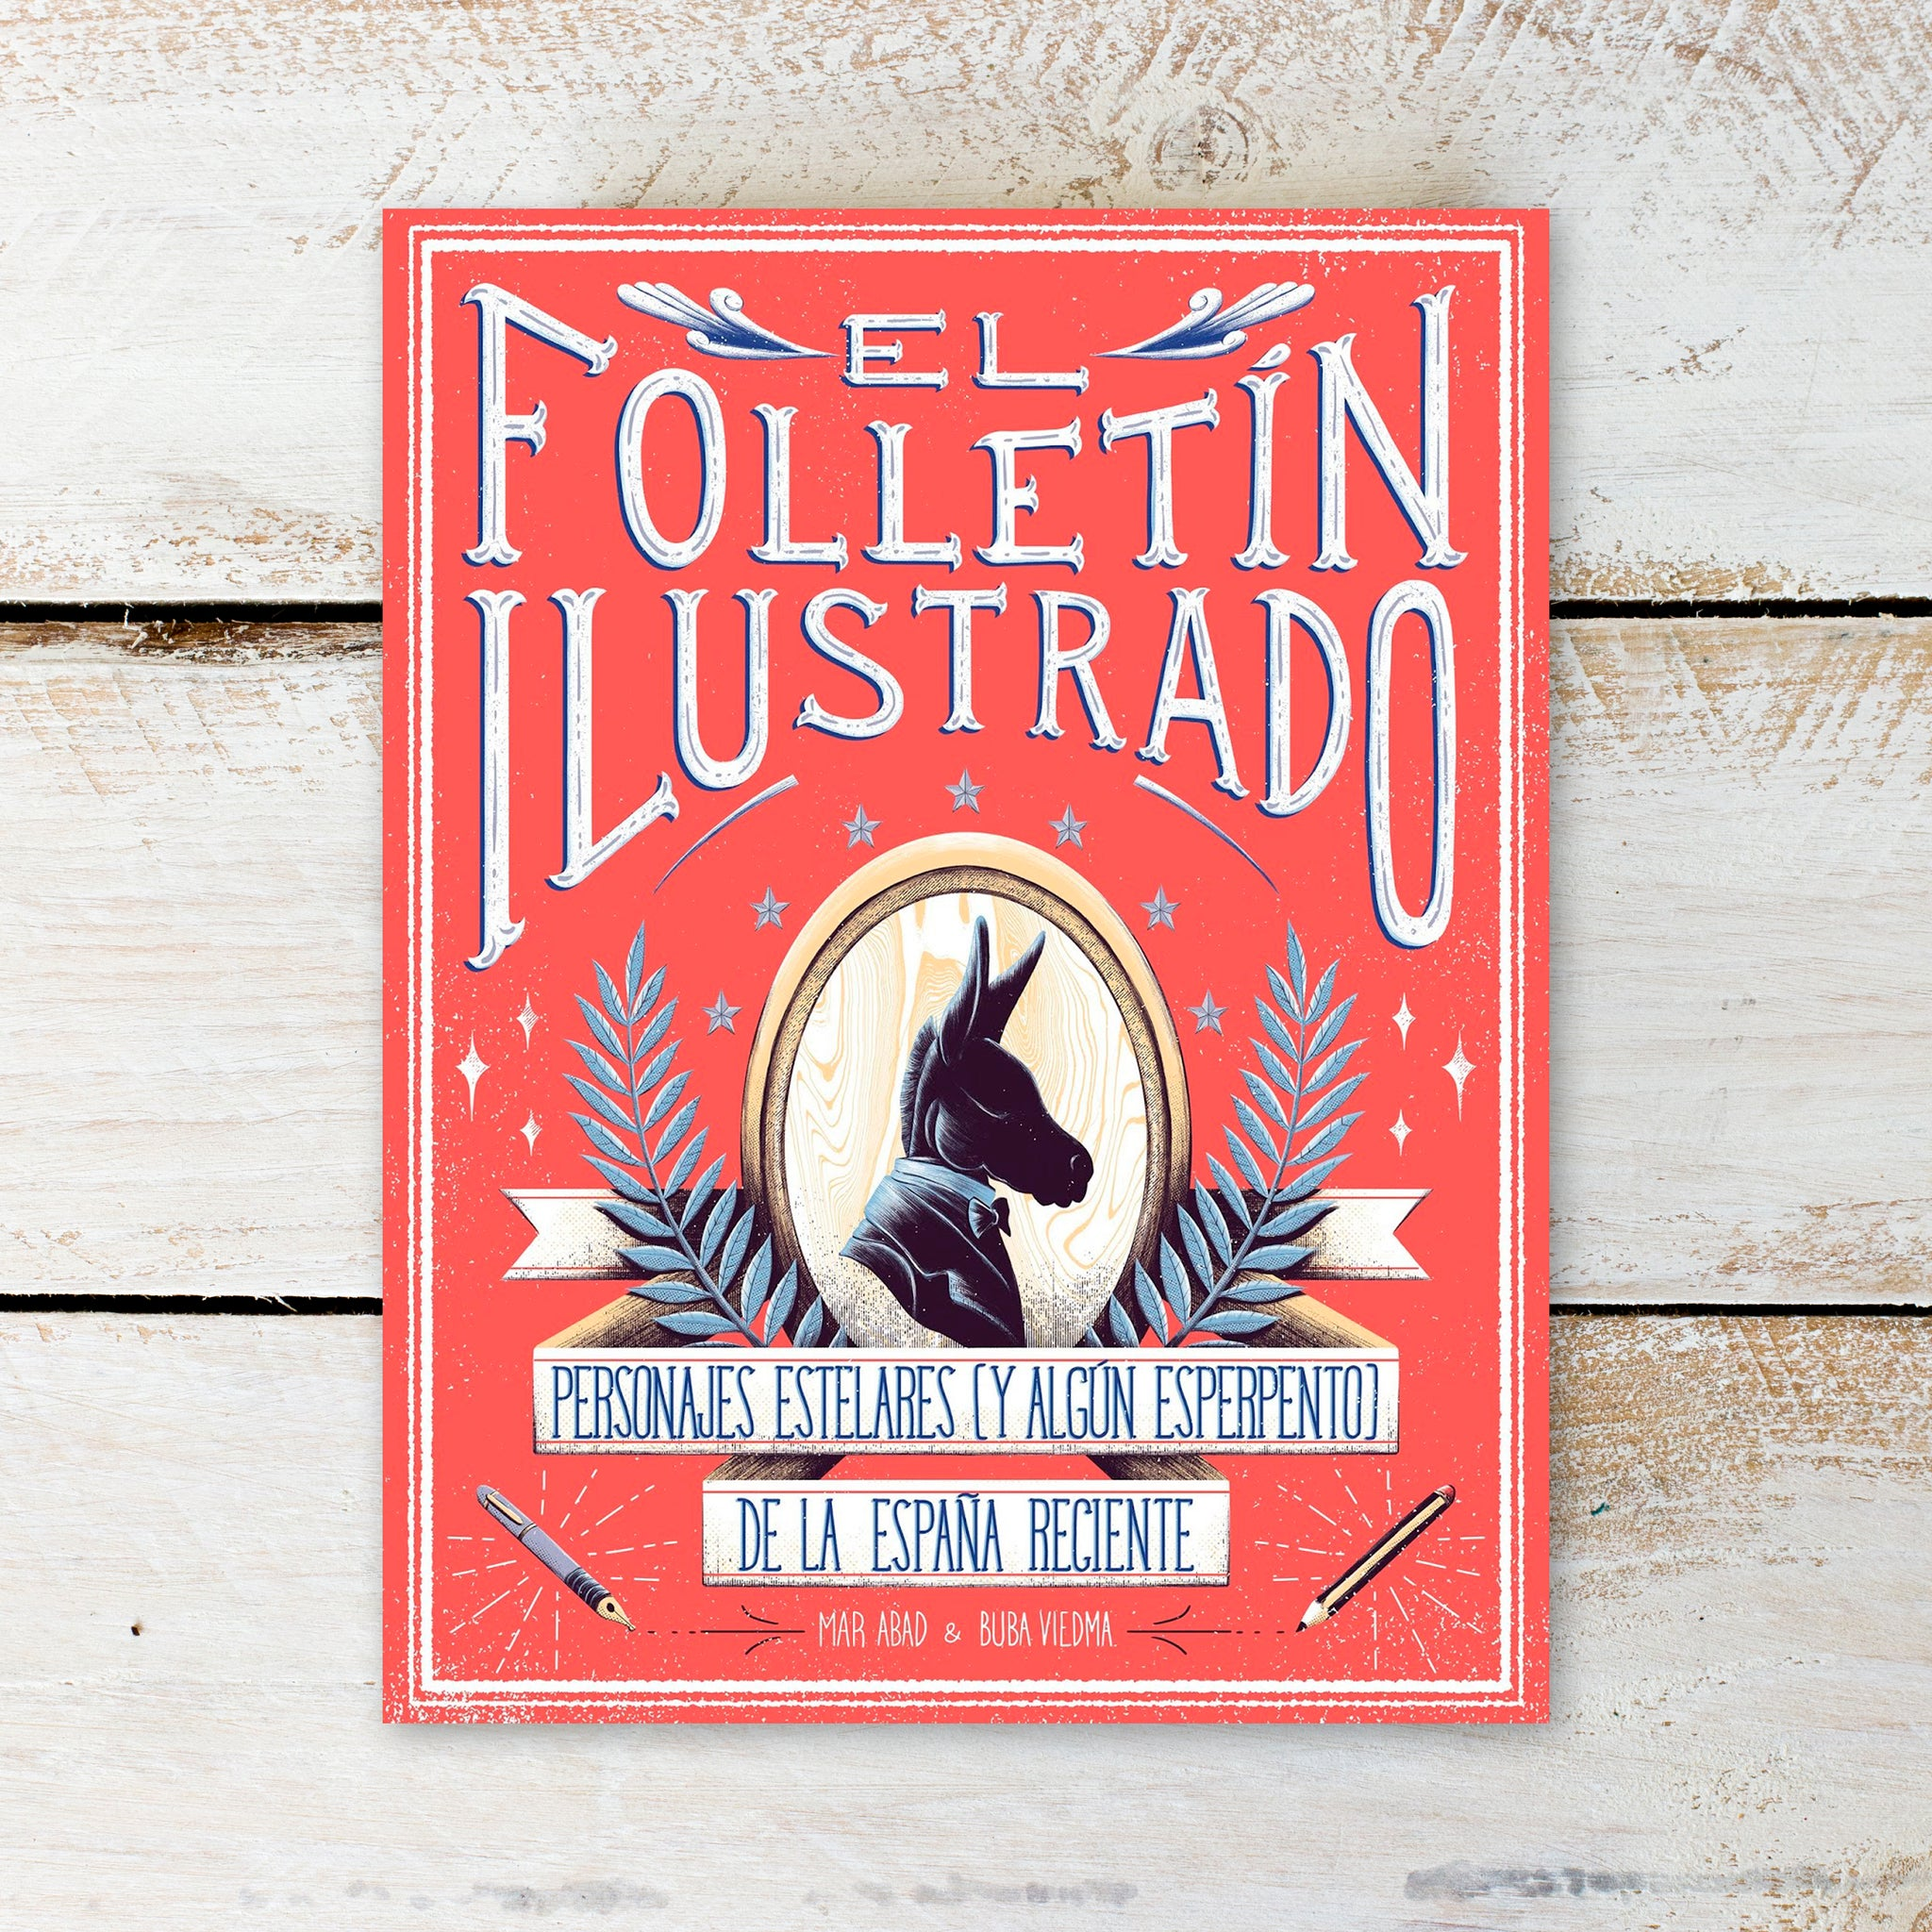 El Folletín Ilustrado